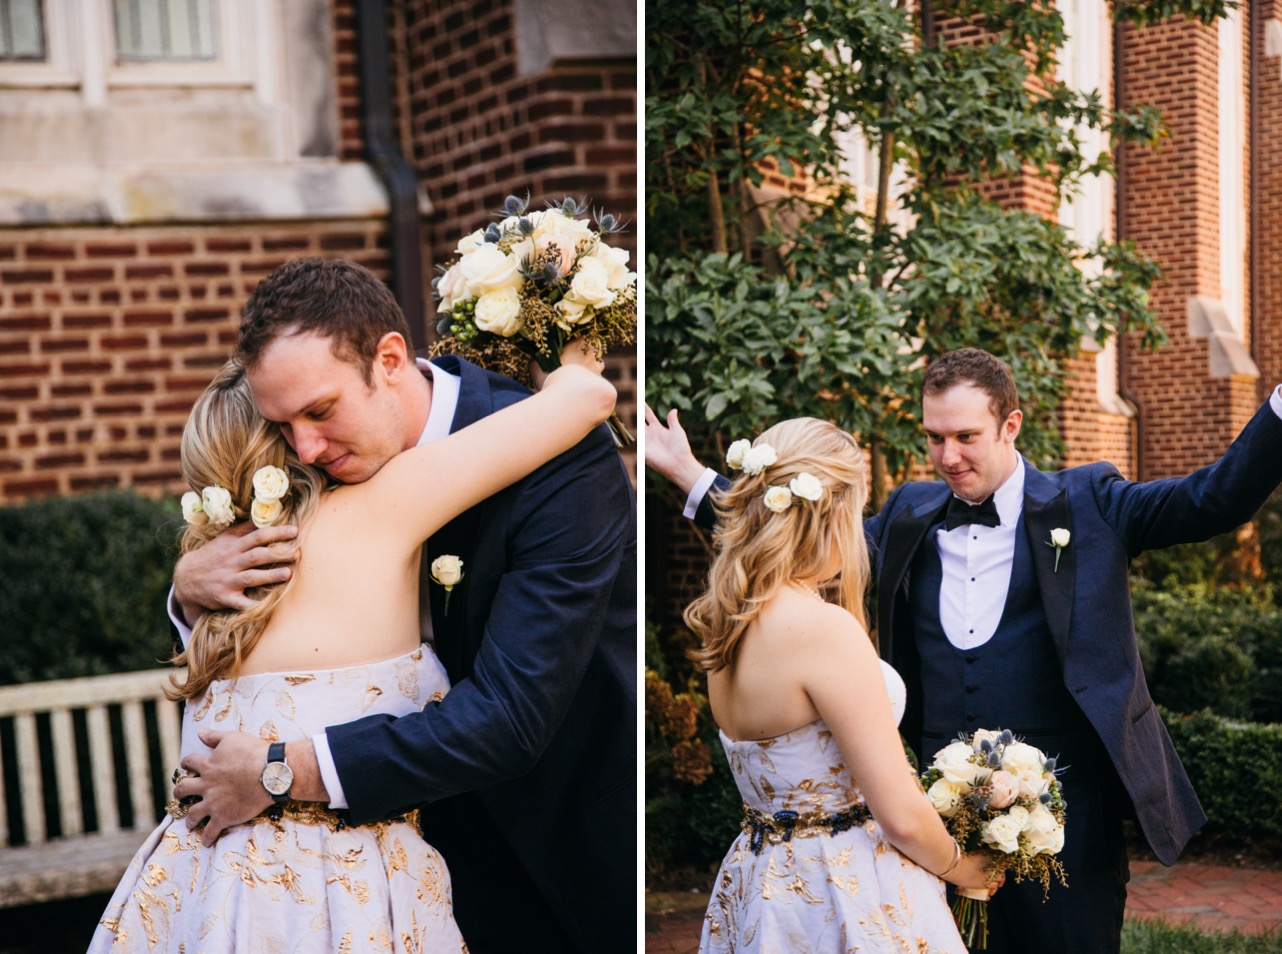 Groom opens his arms and gives the bride a hug before their wedding at Hunter Museum.